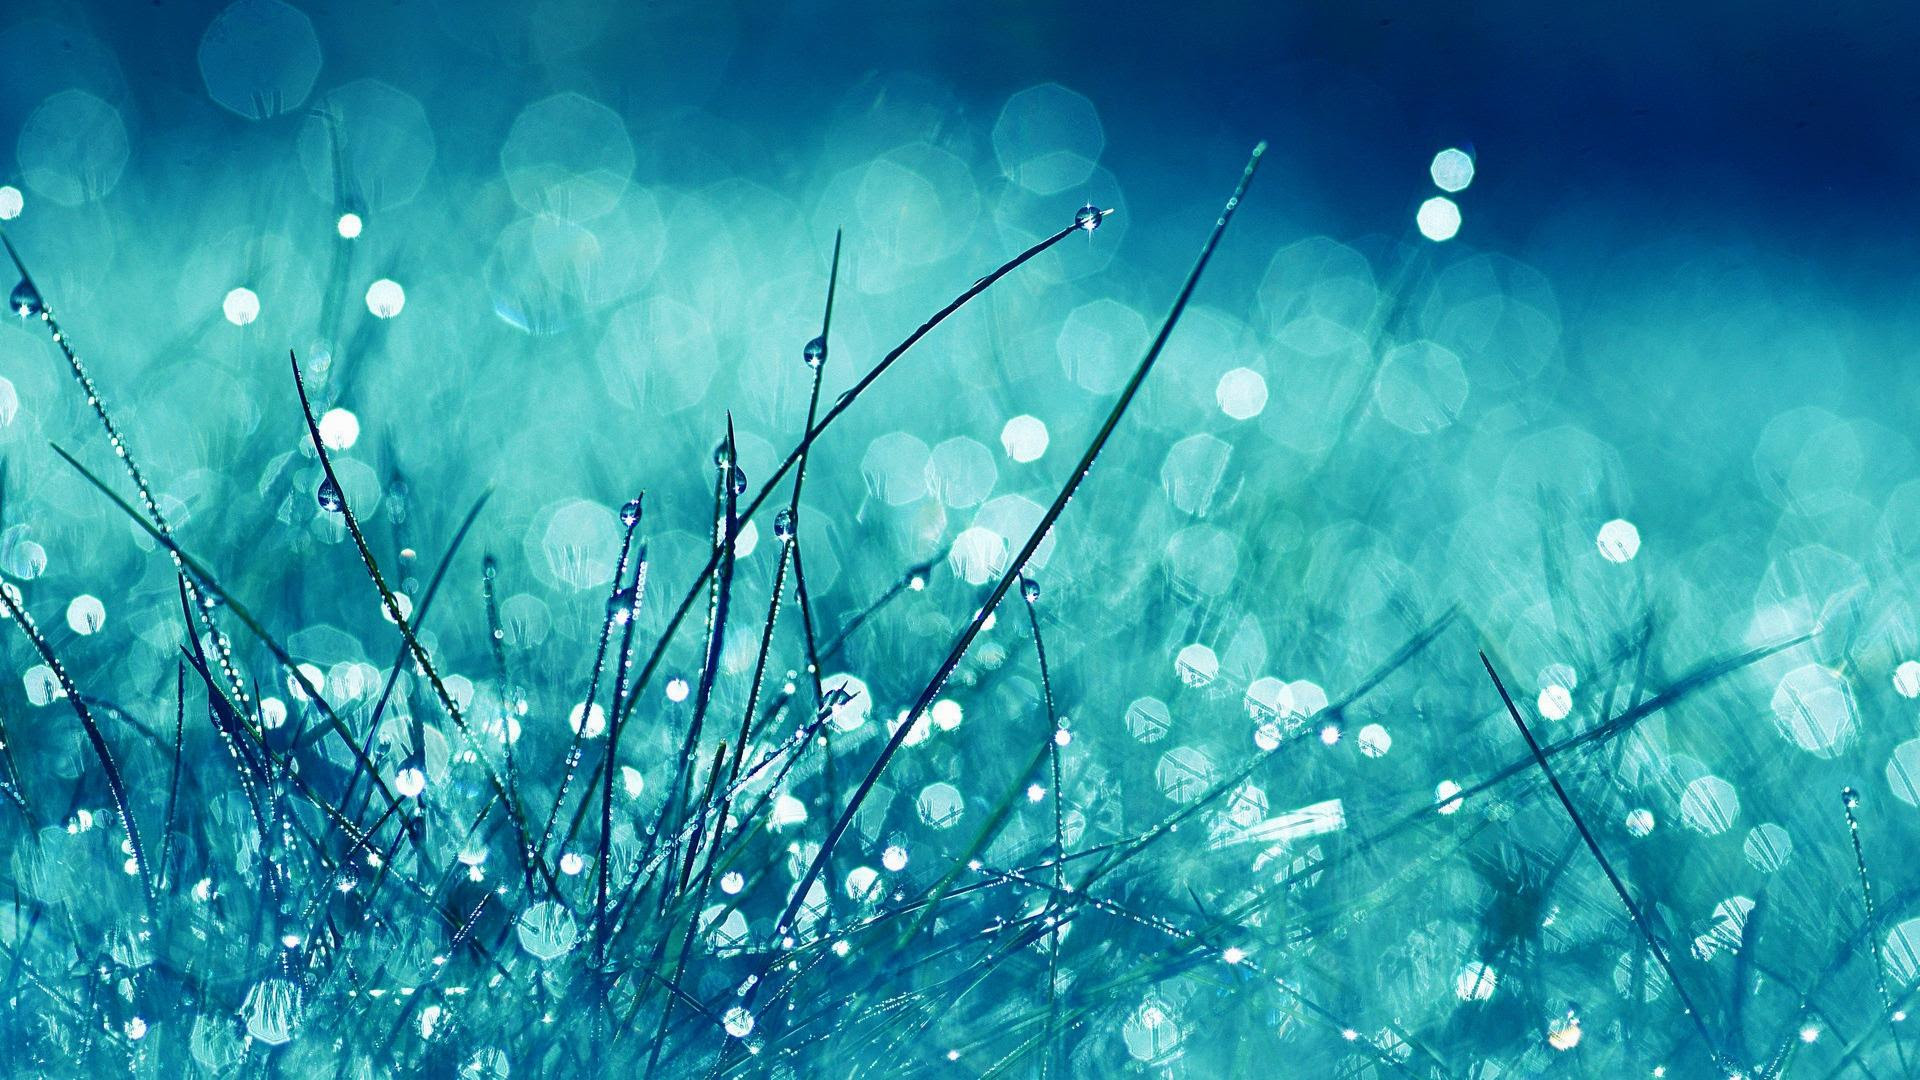 Free Glitter Wallpaper 37 Pictures